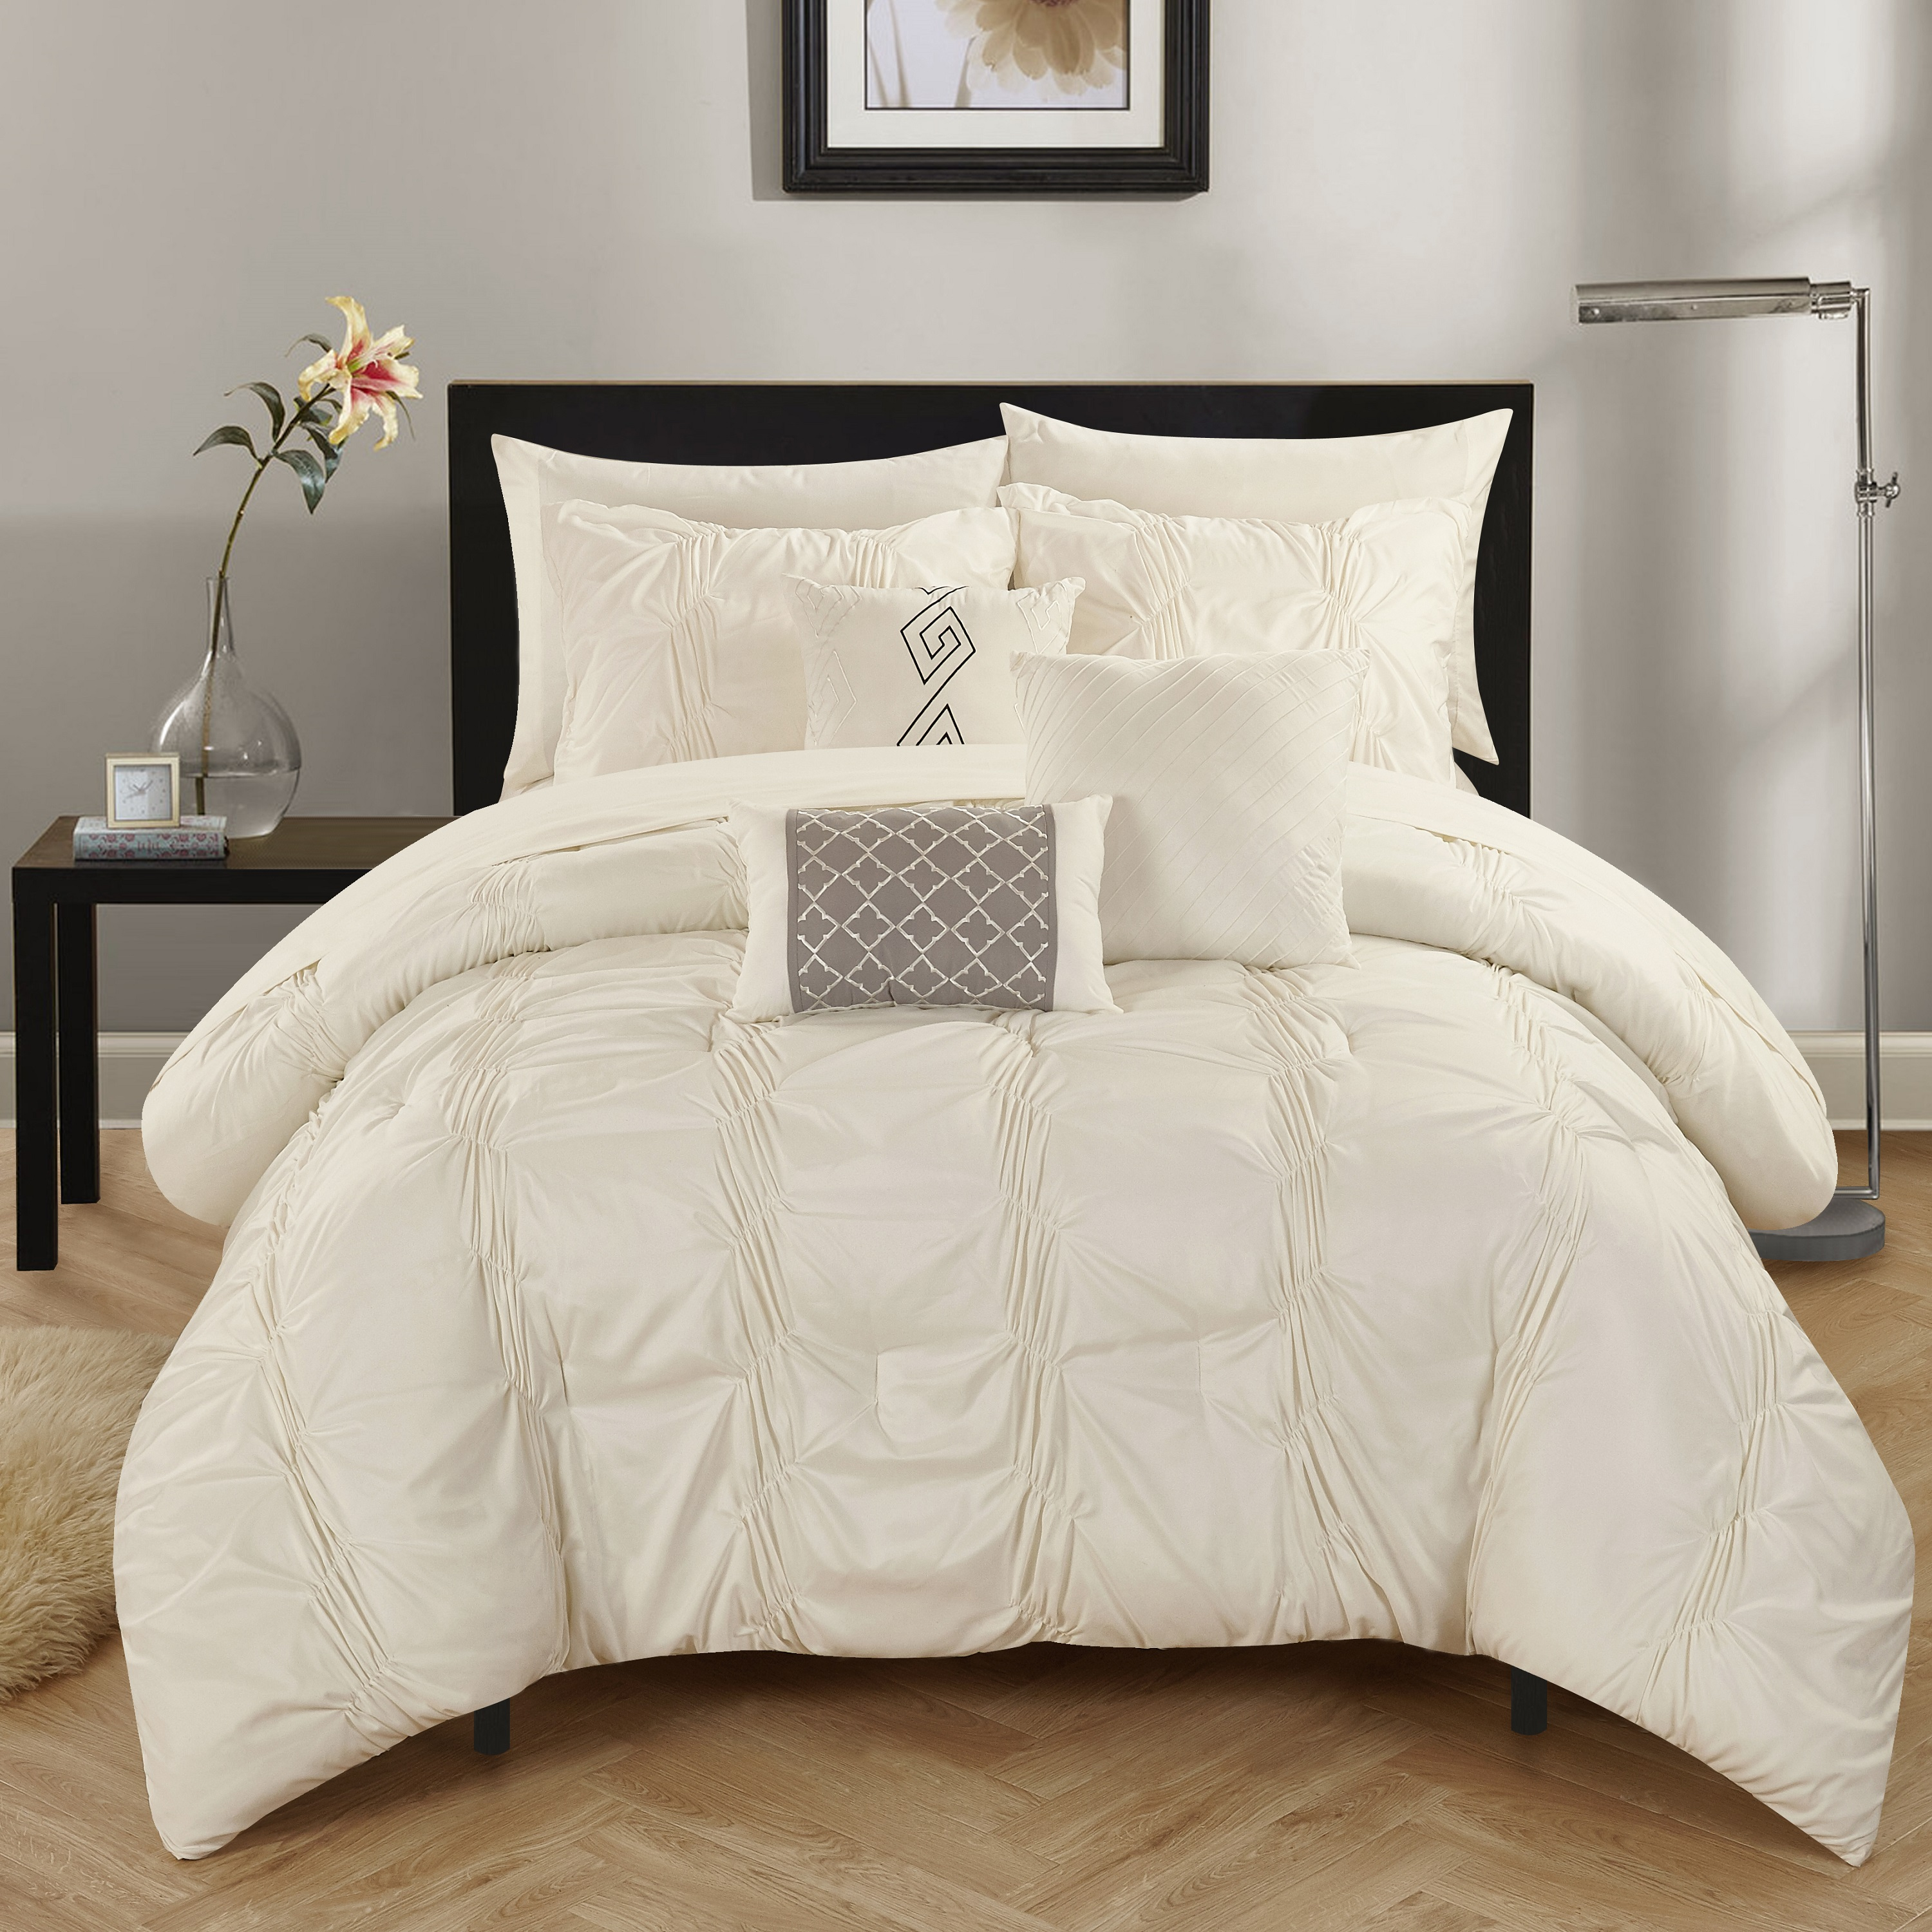 Chic Home 10-Piece Luna Pinch Pleated, ruffled and pleated complete King Bed In a Bag Comforter Set Beige Sheets set and Decorative pillows included